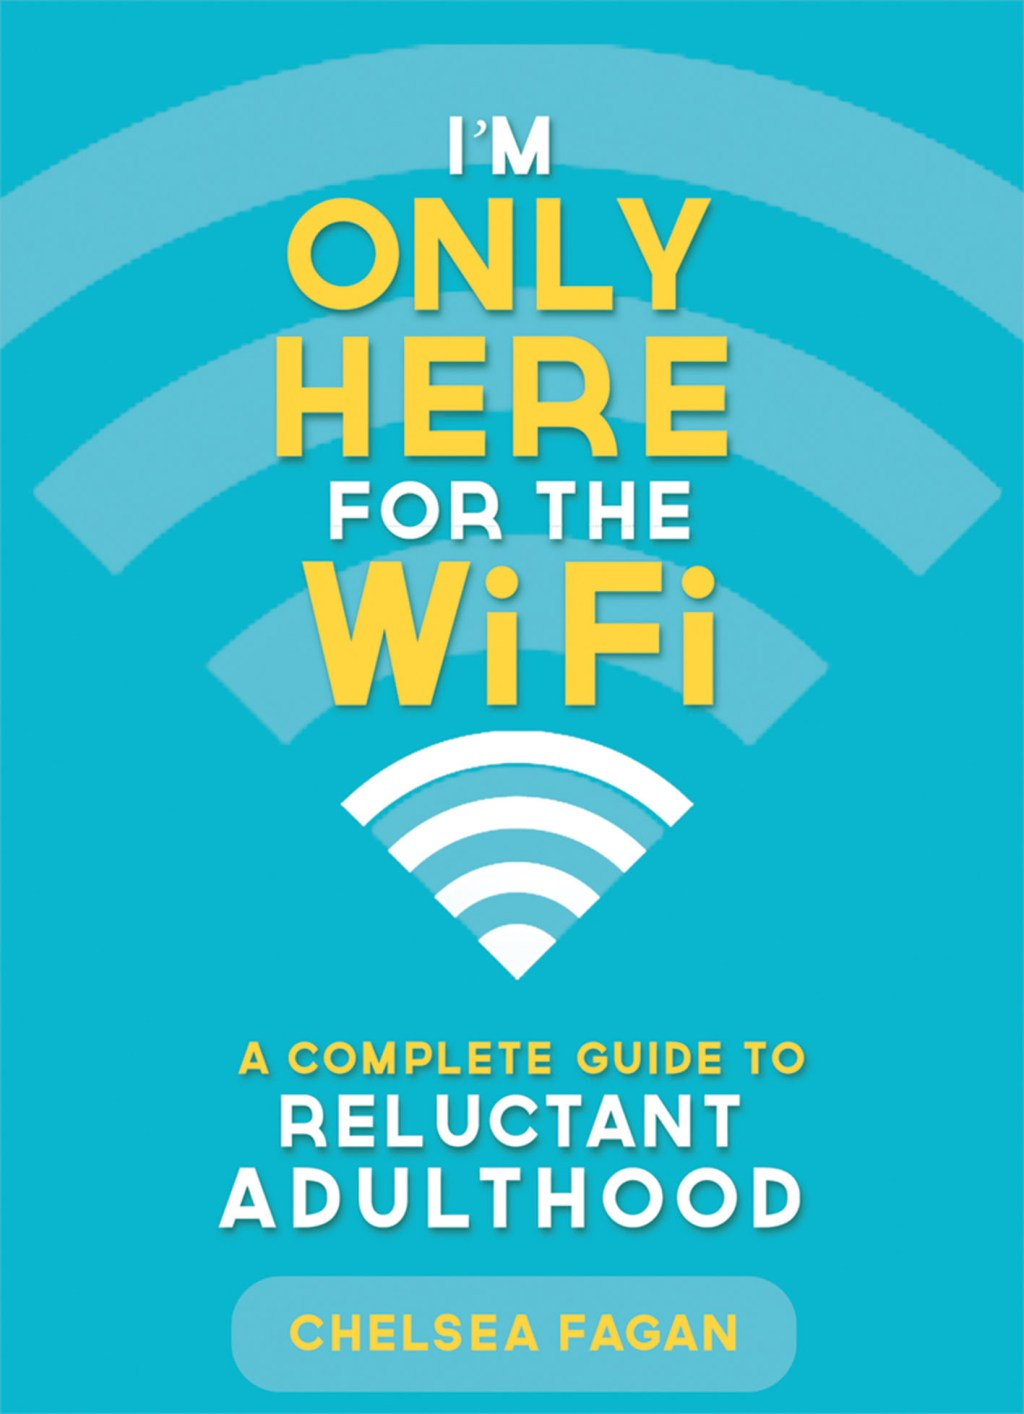 "Ten Opening Paragraphs for a Review of Chelsea Fagan's ""I'm Only Here for the WiFi"""